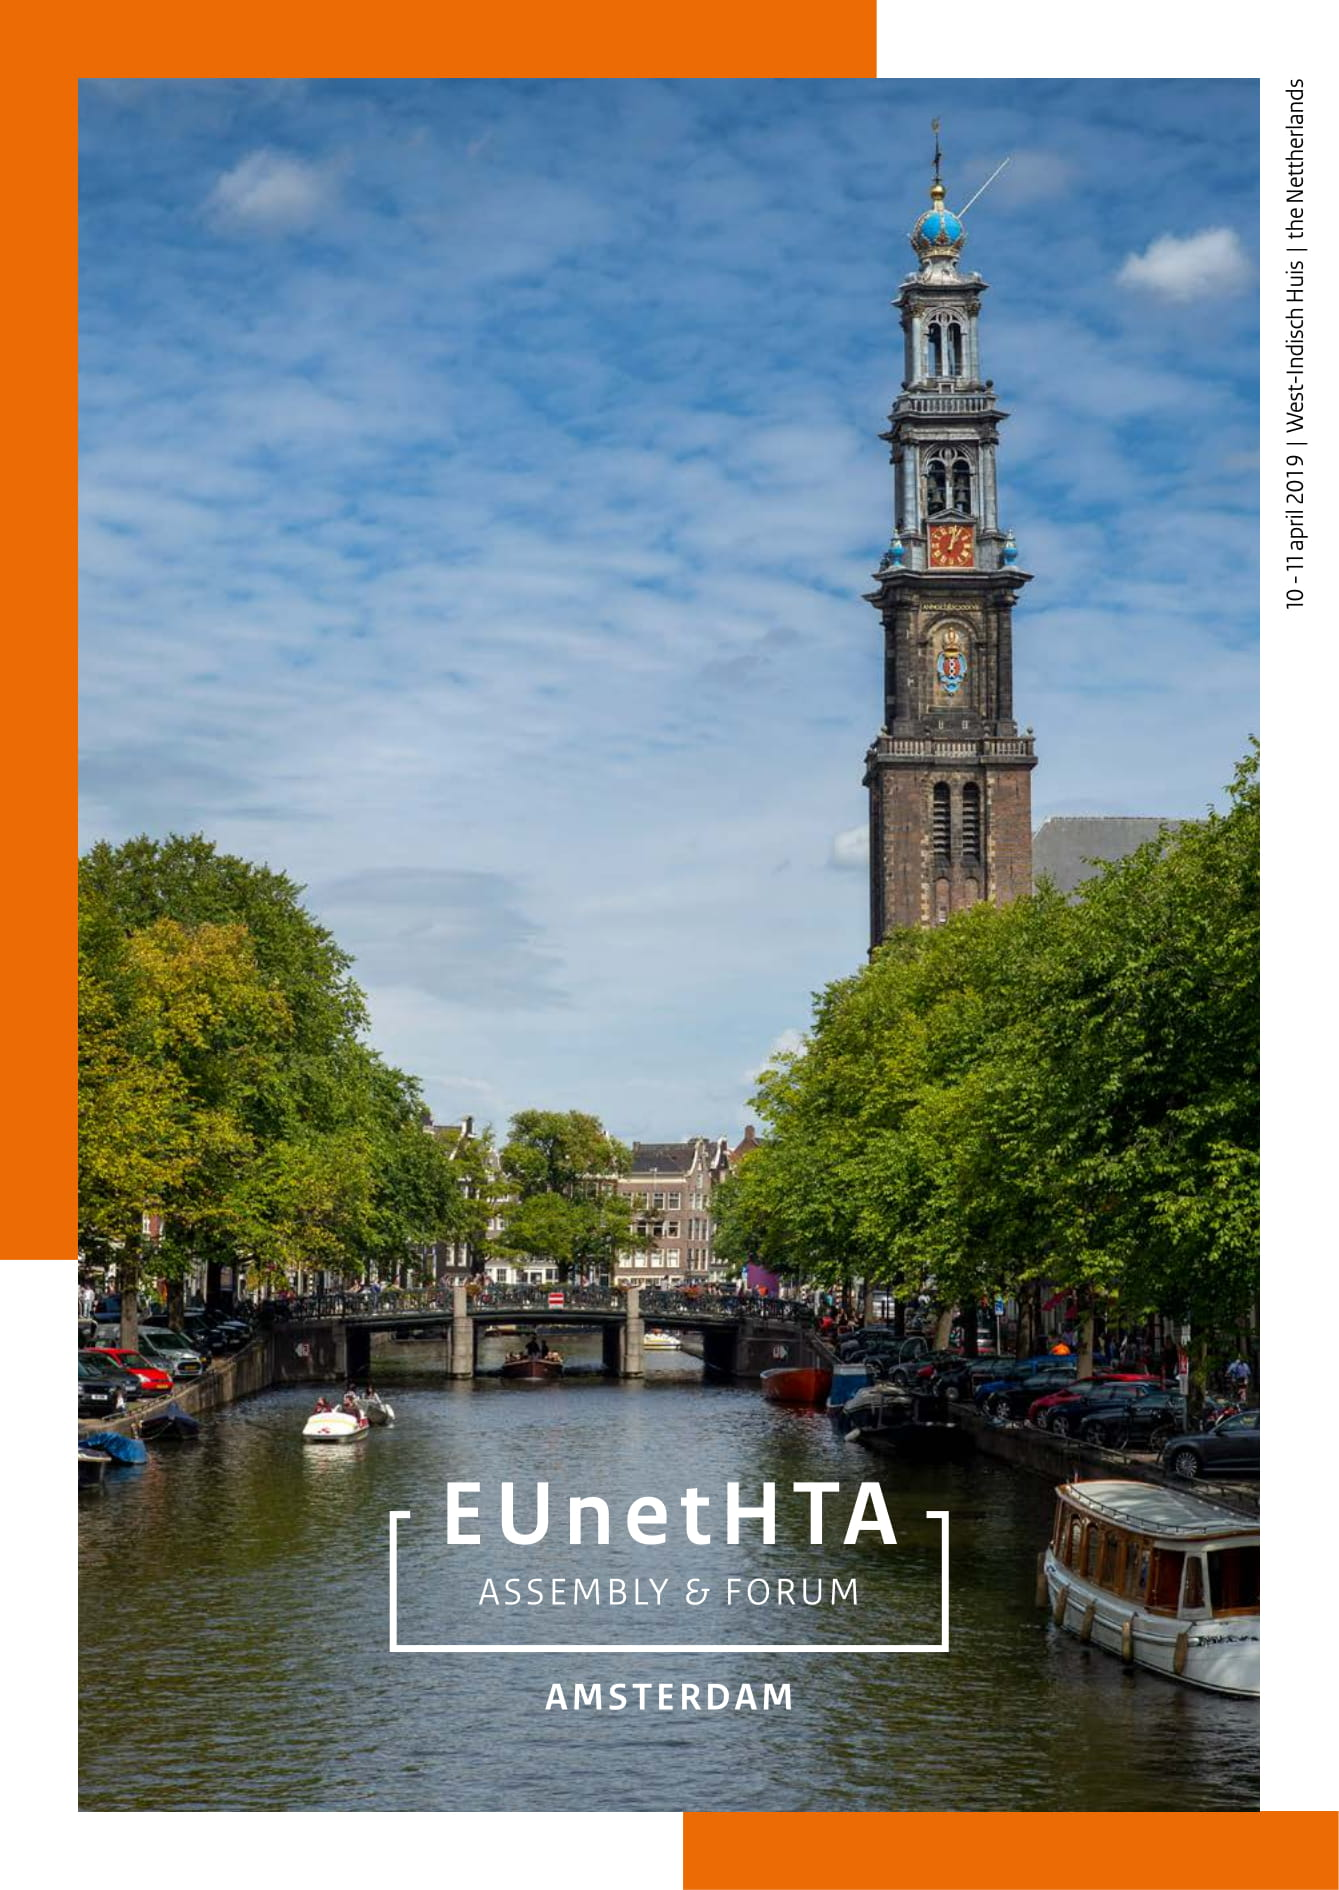 EUnetHTA 2019 Assembly & Forum Welcome Guide – Now Available